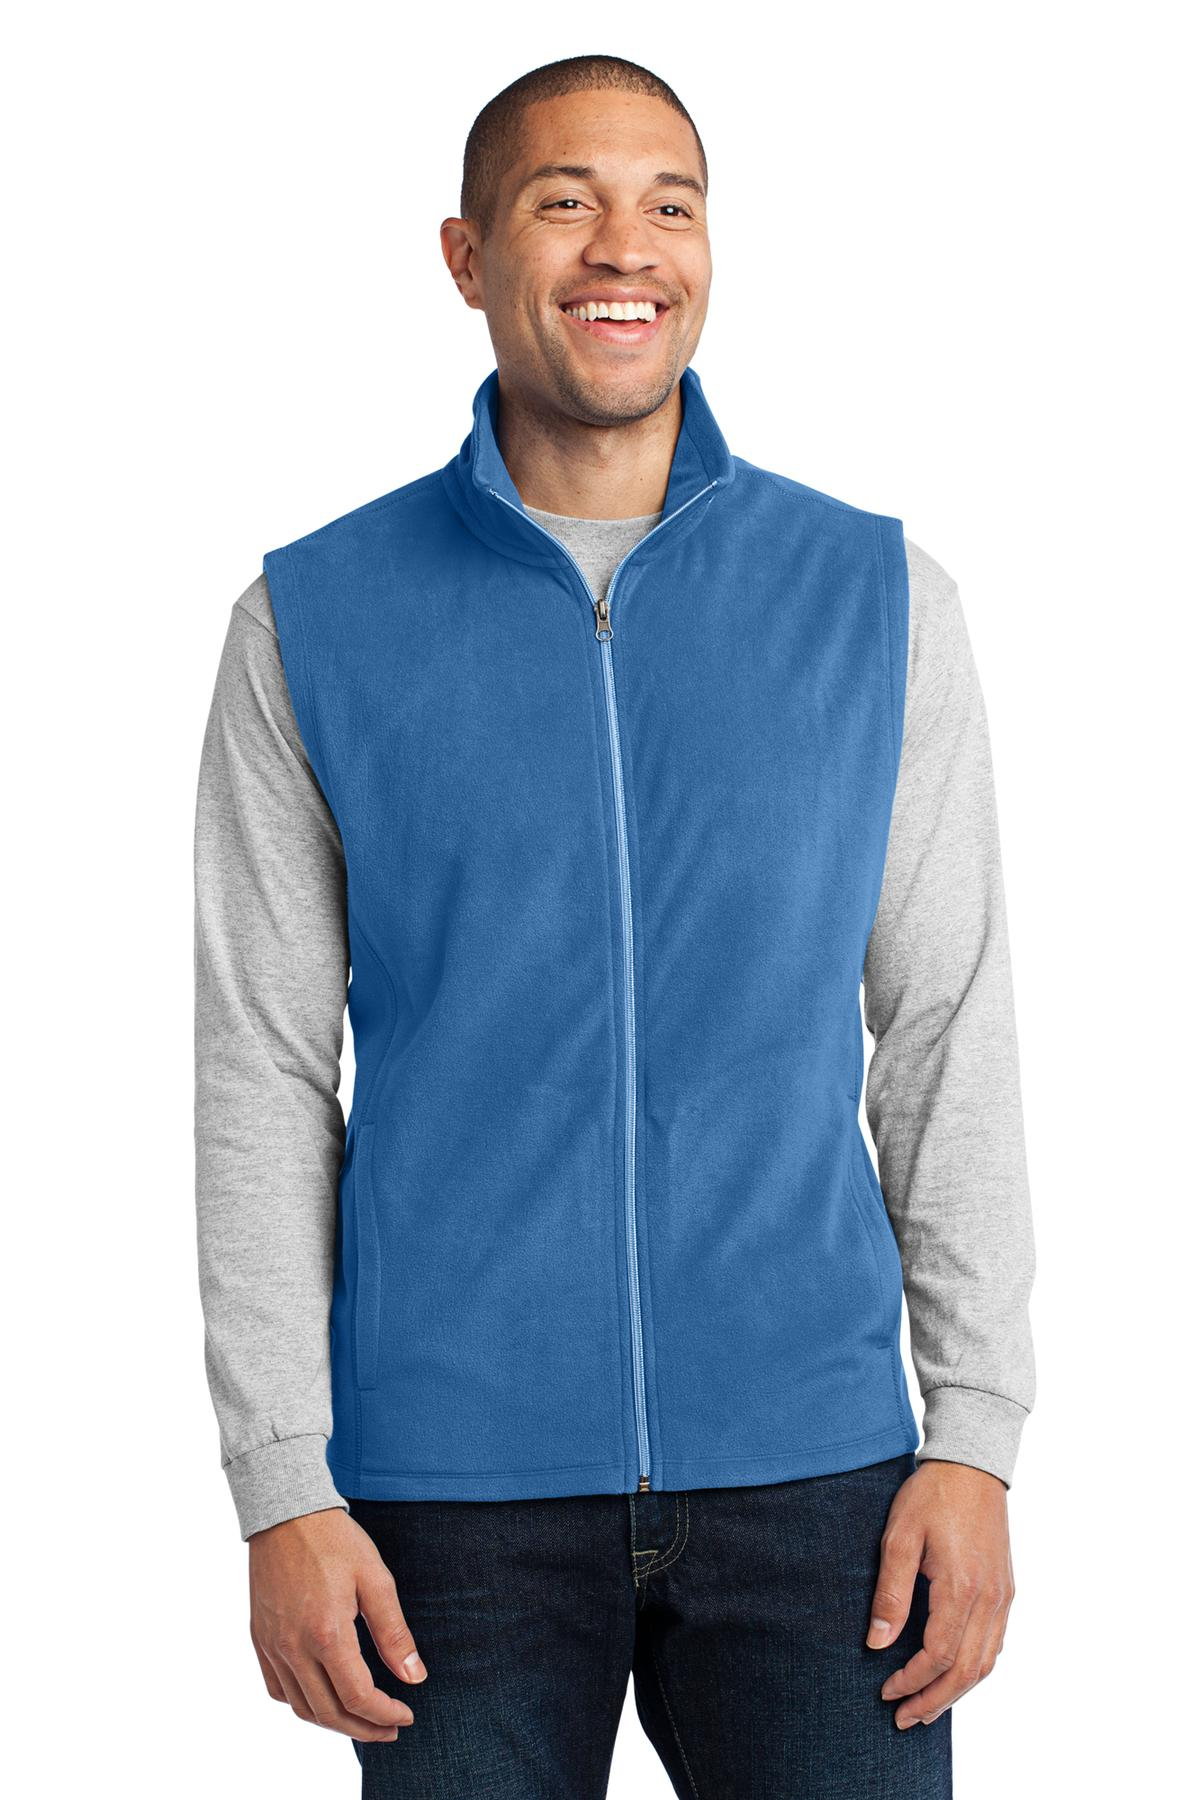 Outerwear-Vests-3